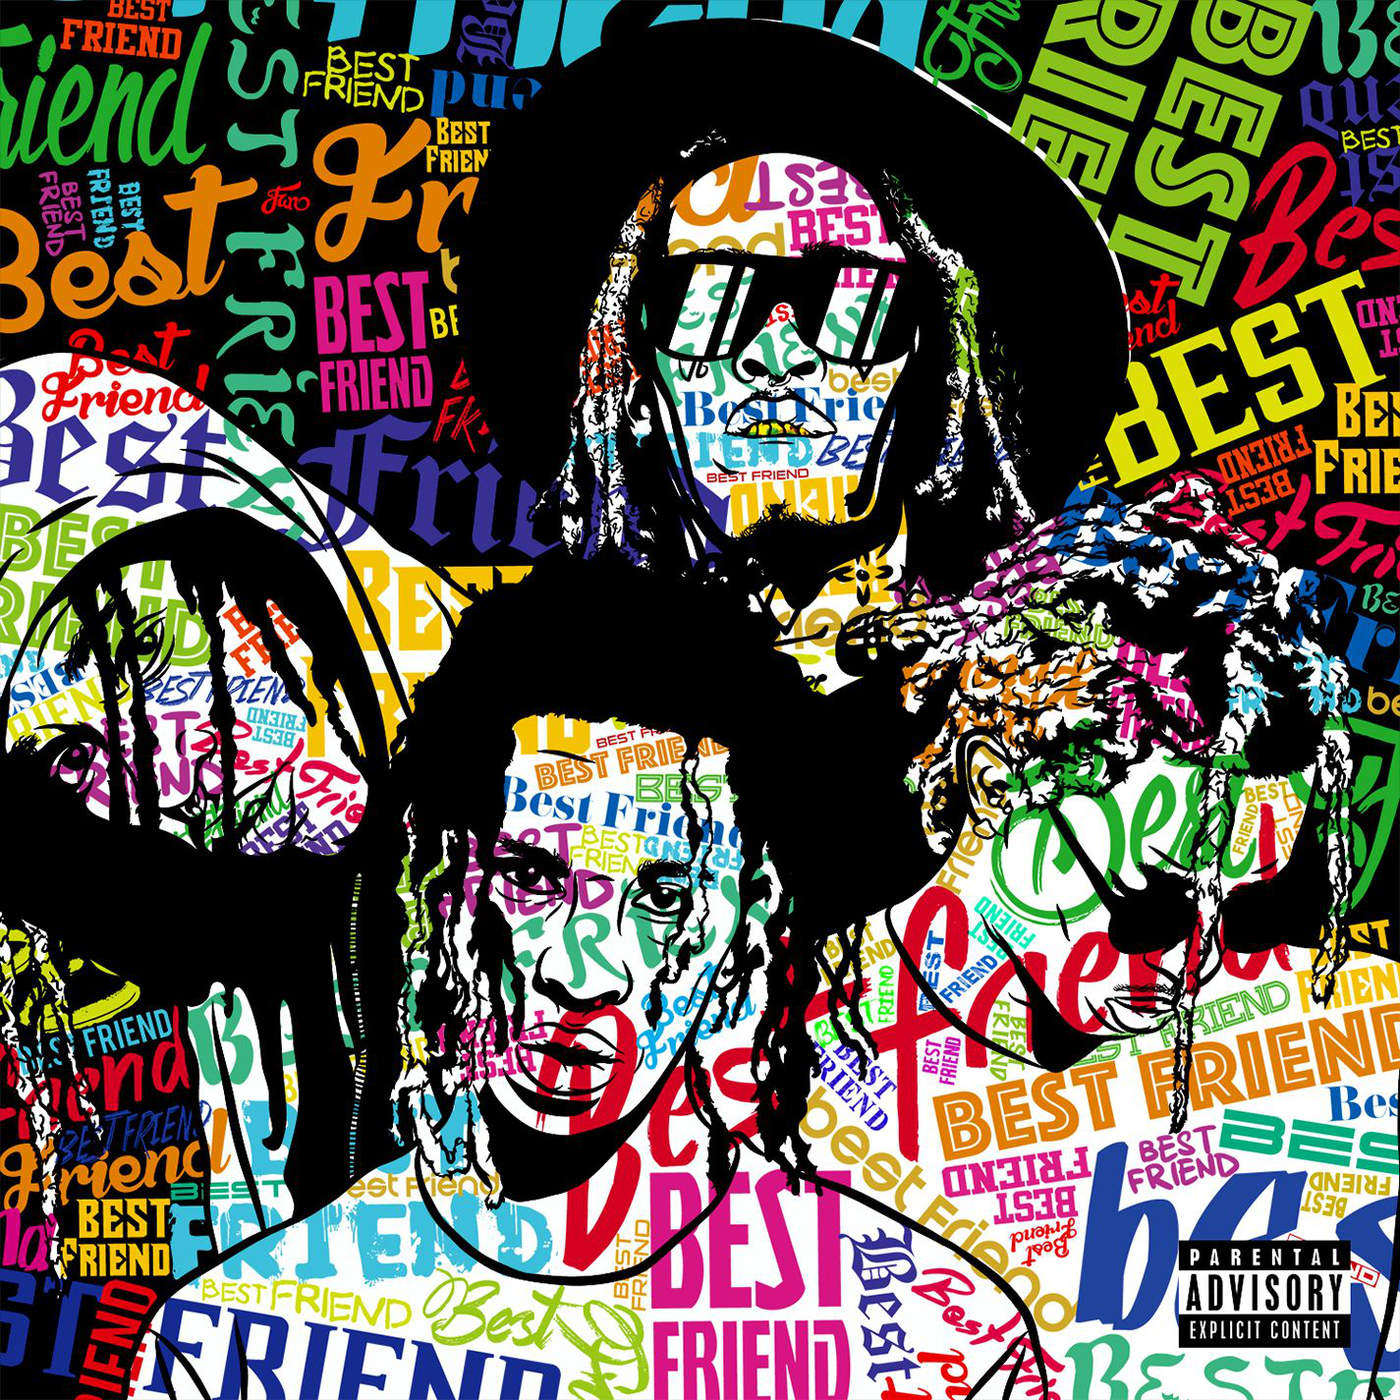 Young Thug - Best Friend - Single Cover